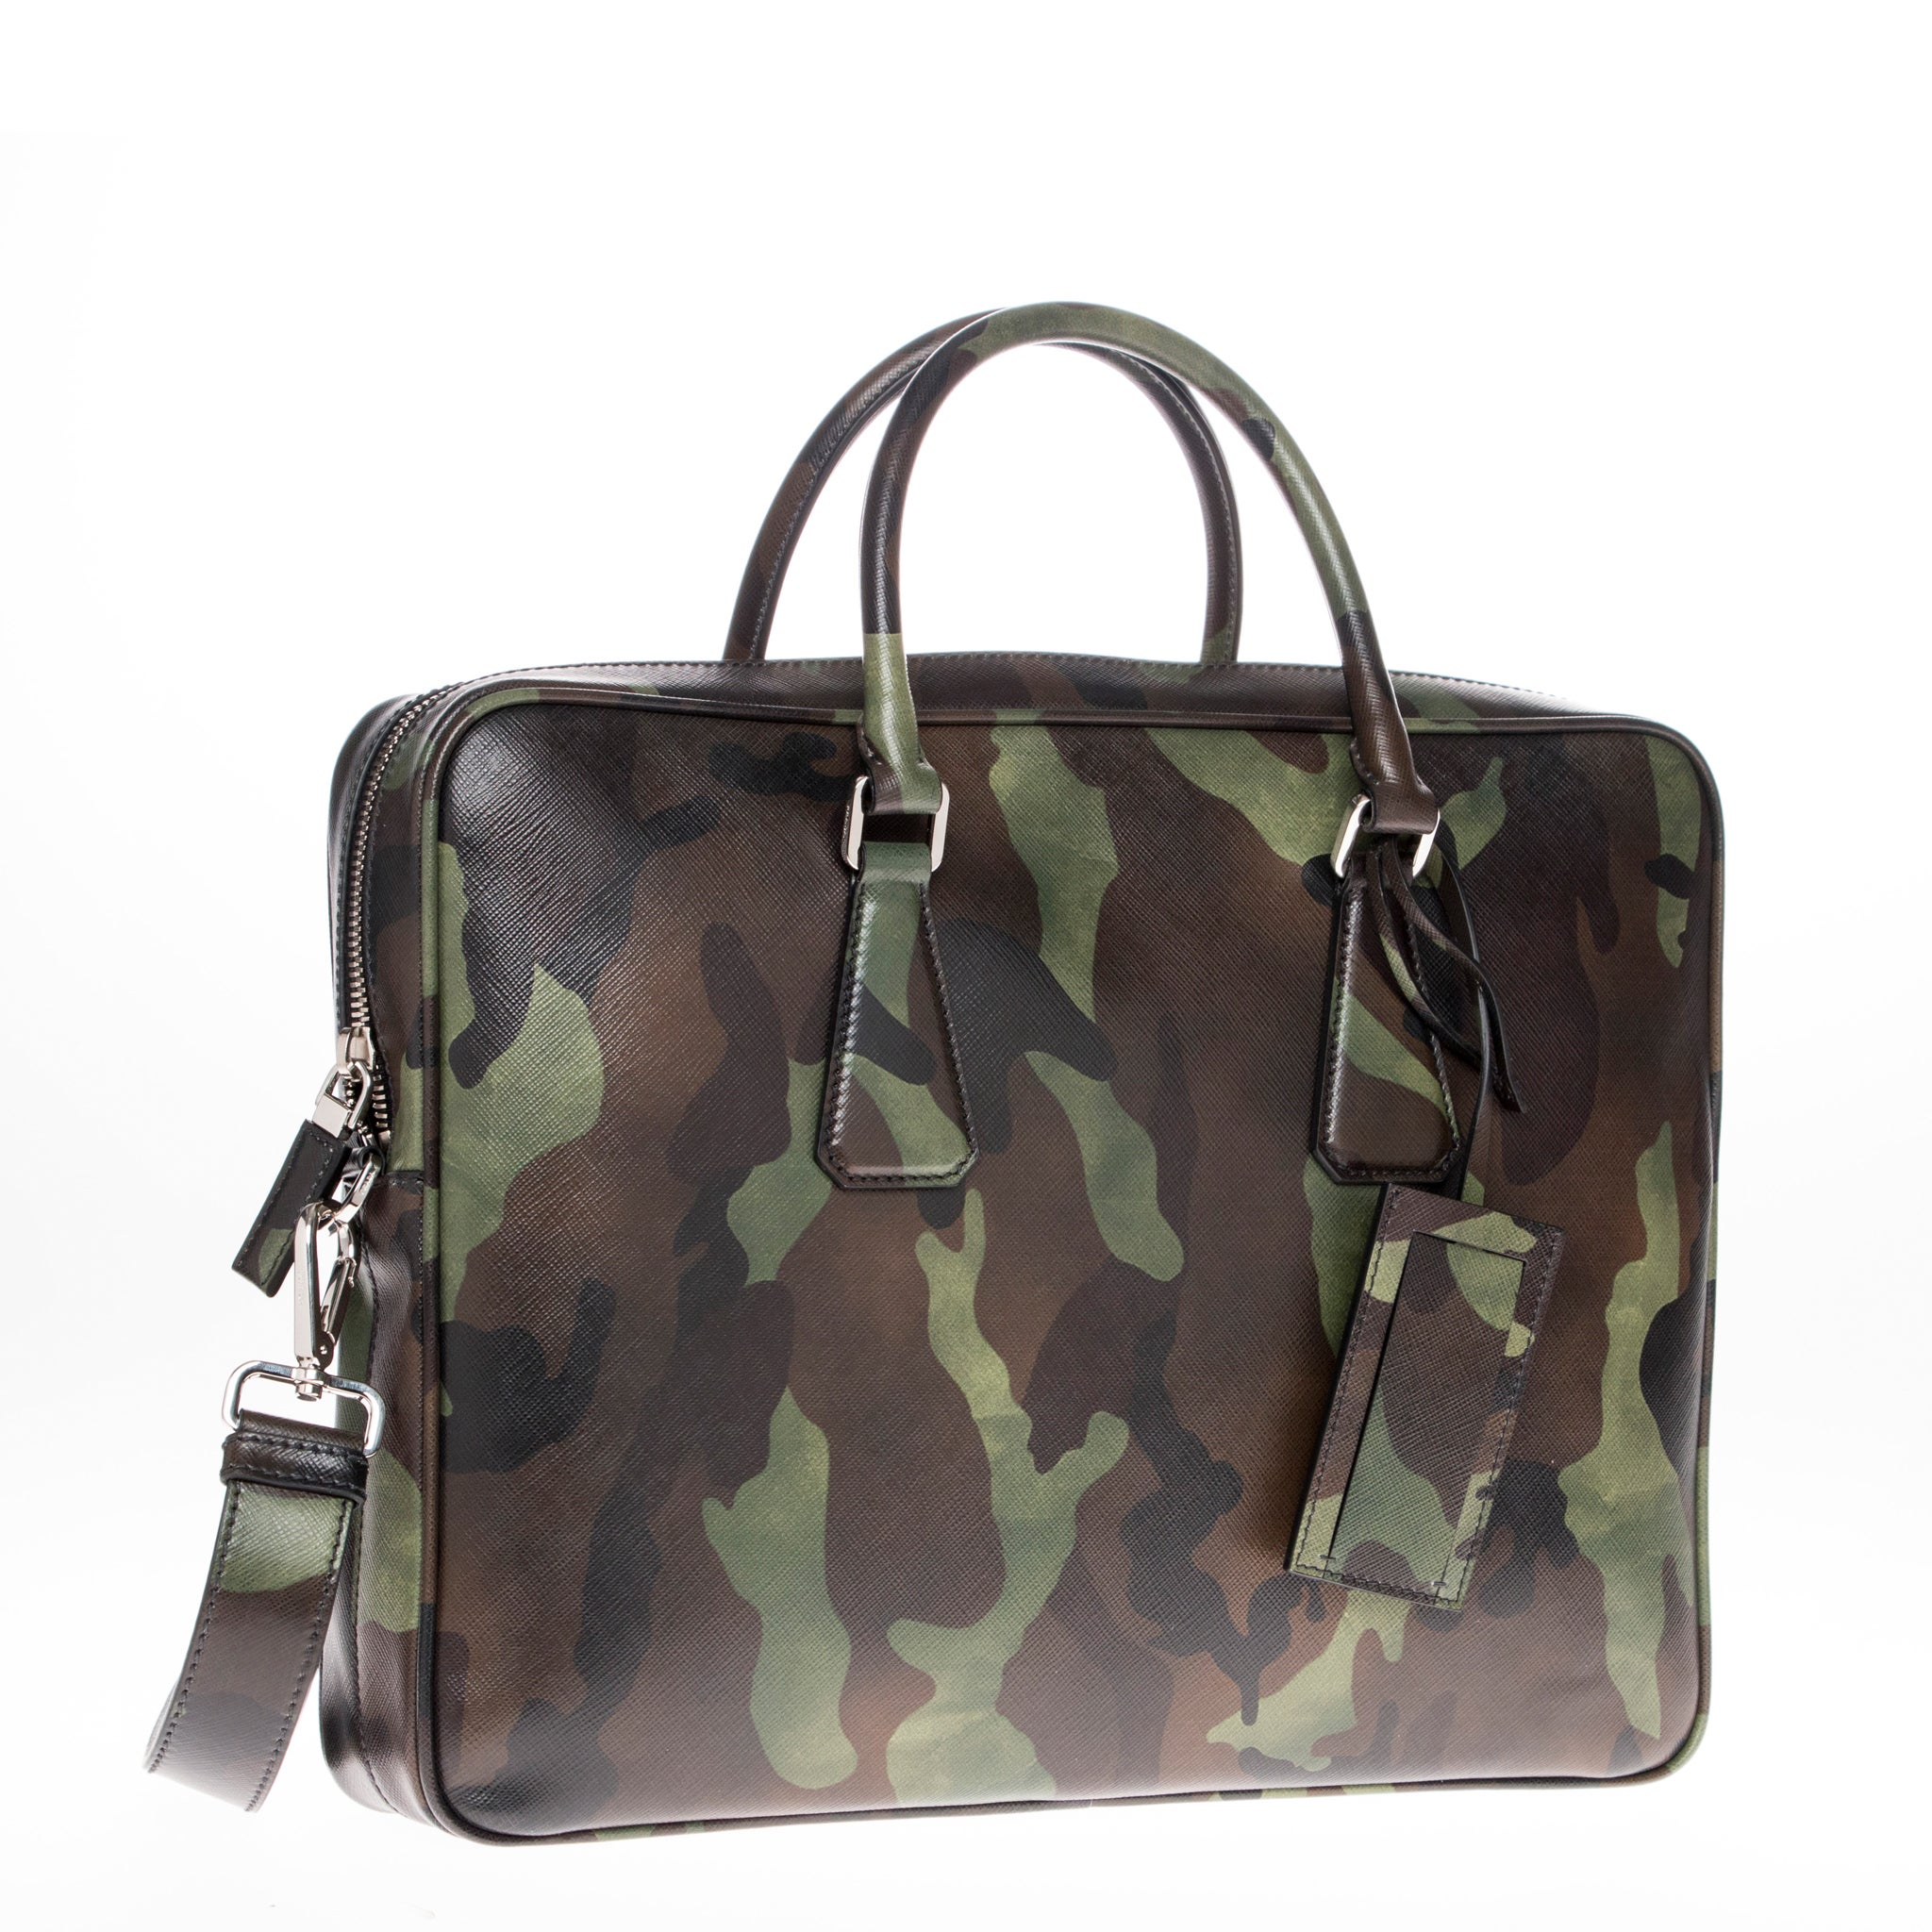 a79d9a5665f3 Shop Prada Camouflage Print Saffiano Leather Briefcase (As Is Item) - Free  Shipping Today - Overstock - 12832349